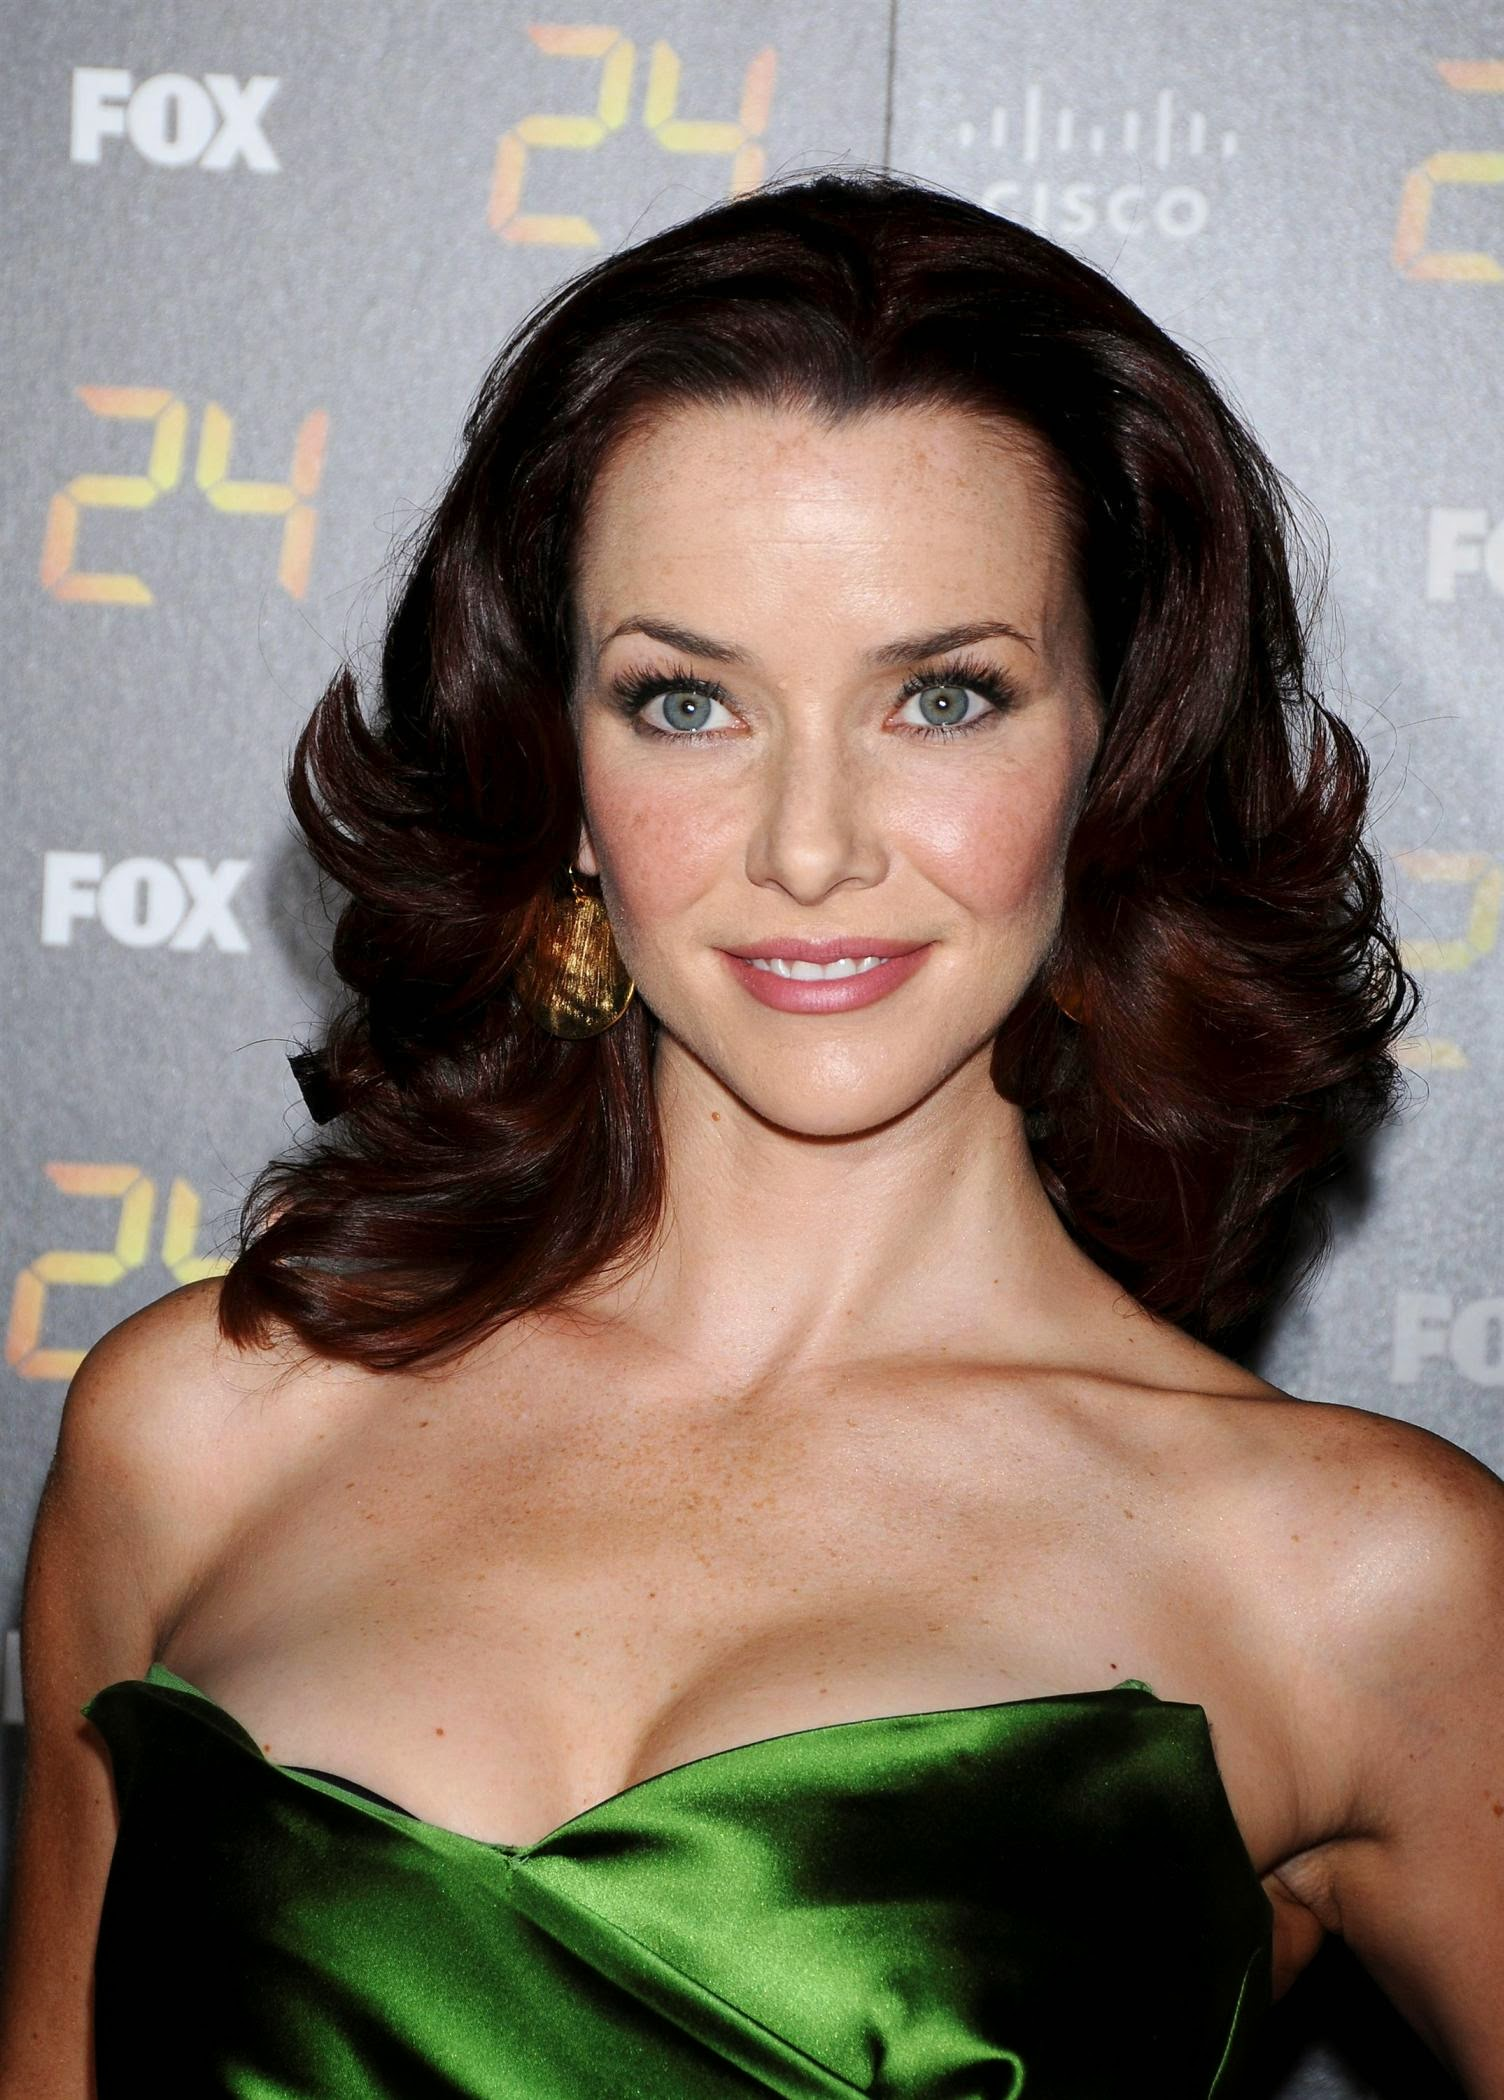 annie wersching - photo #37